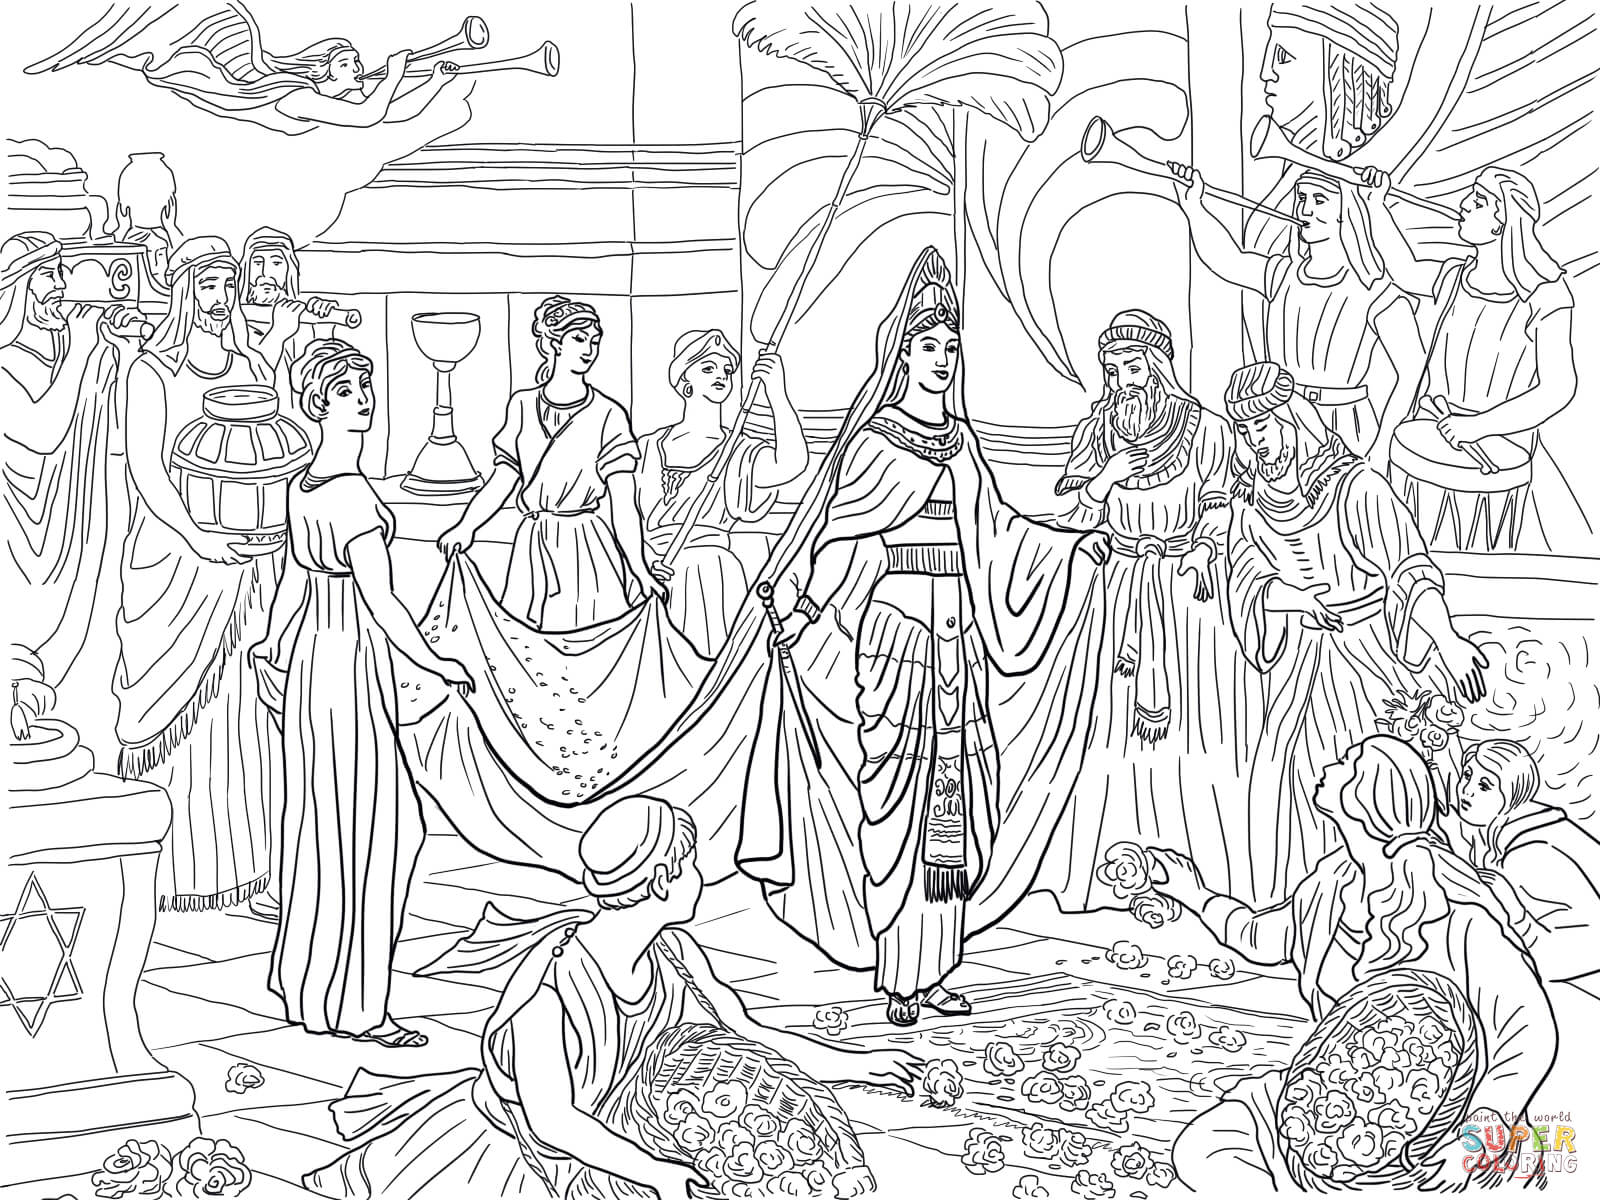 Coloring pages queen elizabeth 1 - Coloring Pages Queen Elizabeth 1 The Arrival Of The Queen Of Sheba Download